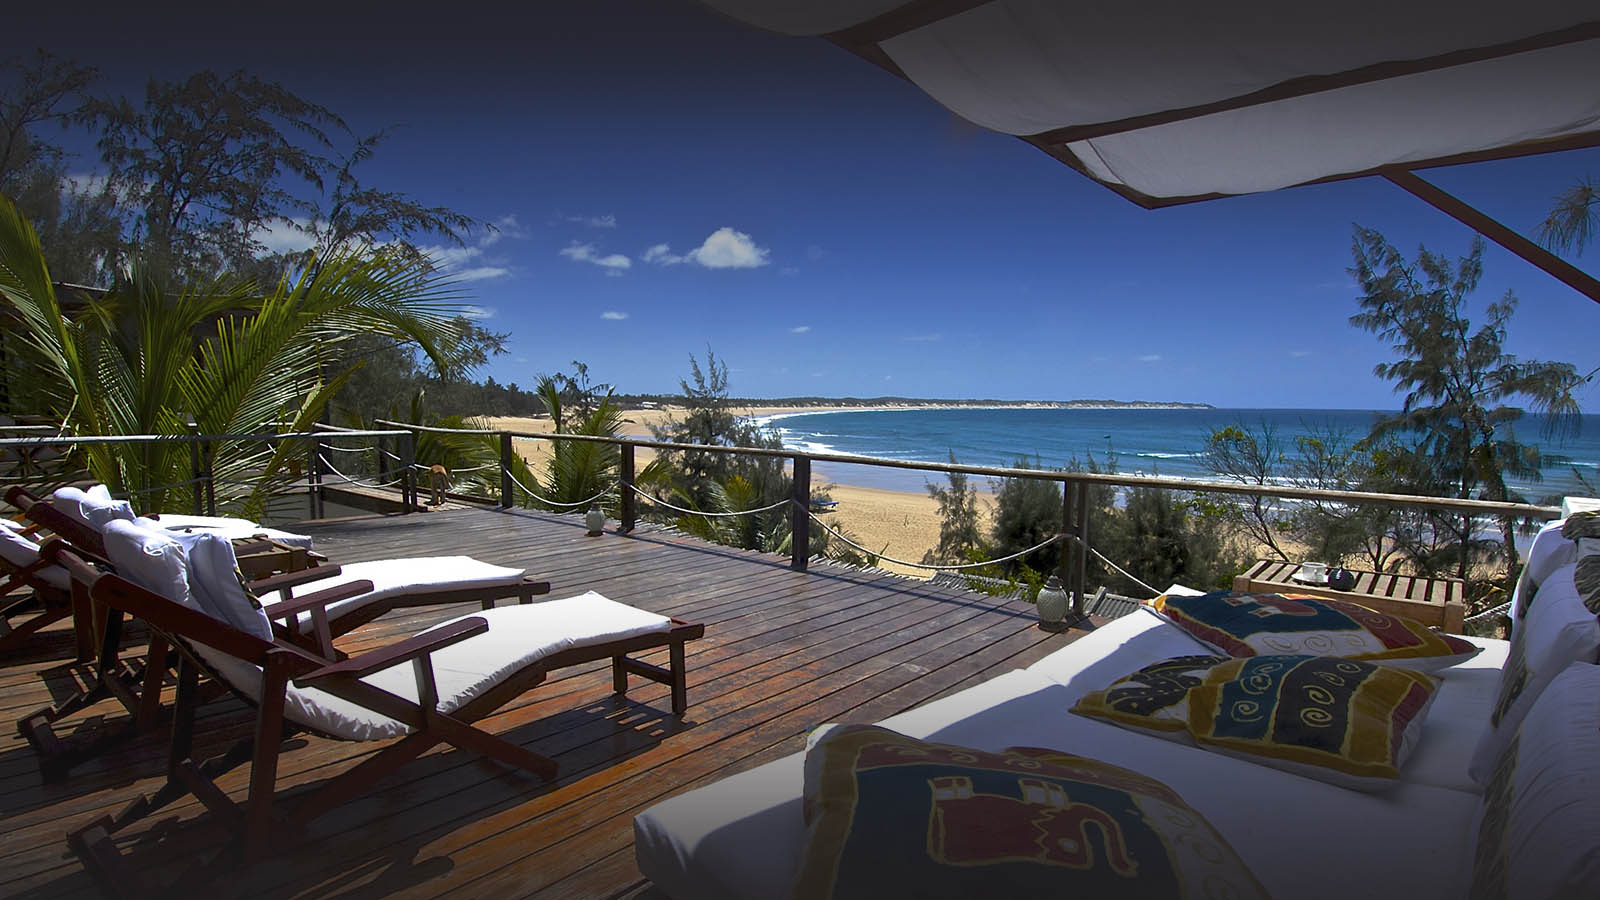 baia sonambula guest-house-tofo-mozambique-lodges-zambia-in-style-diving-enthusiast-sundeck